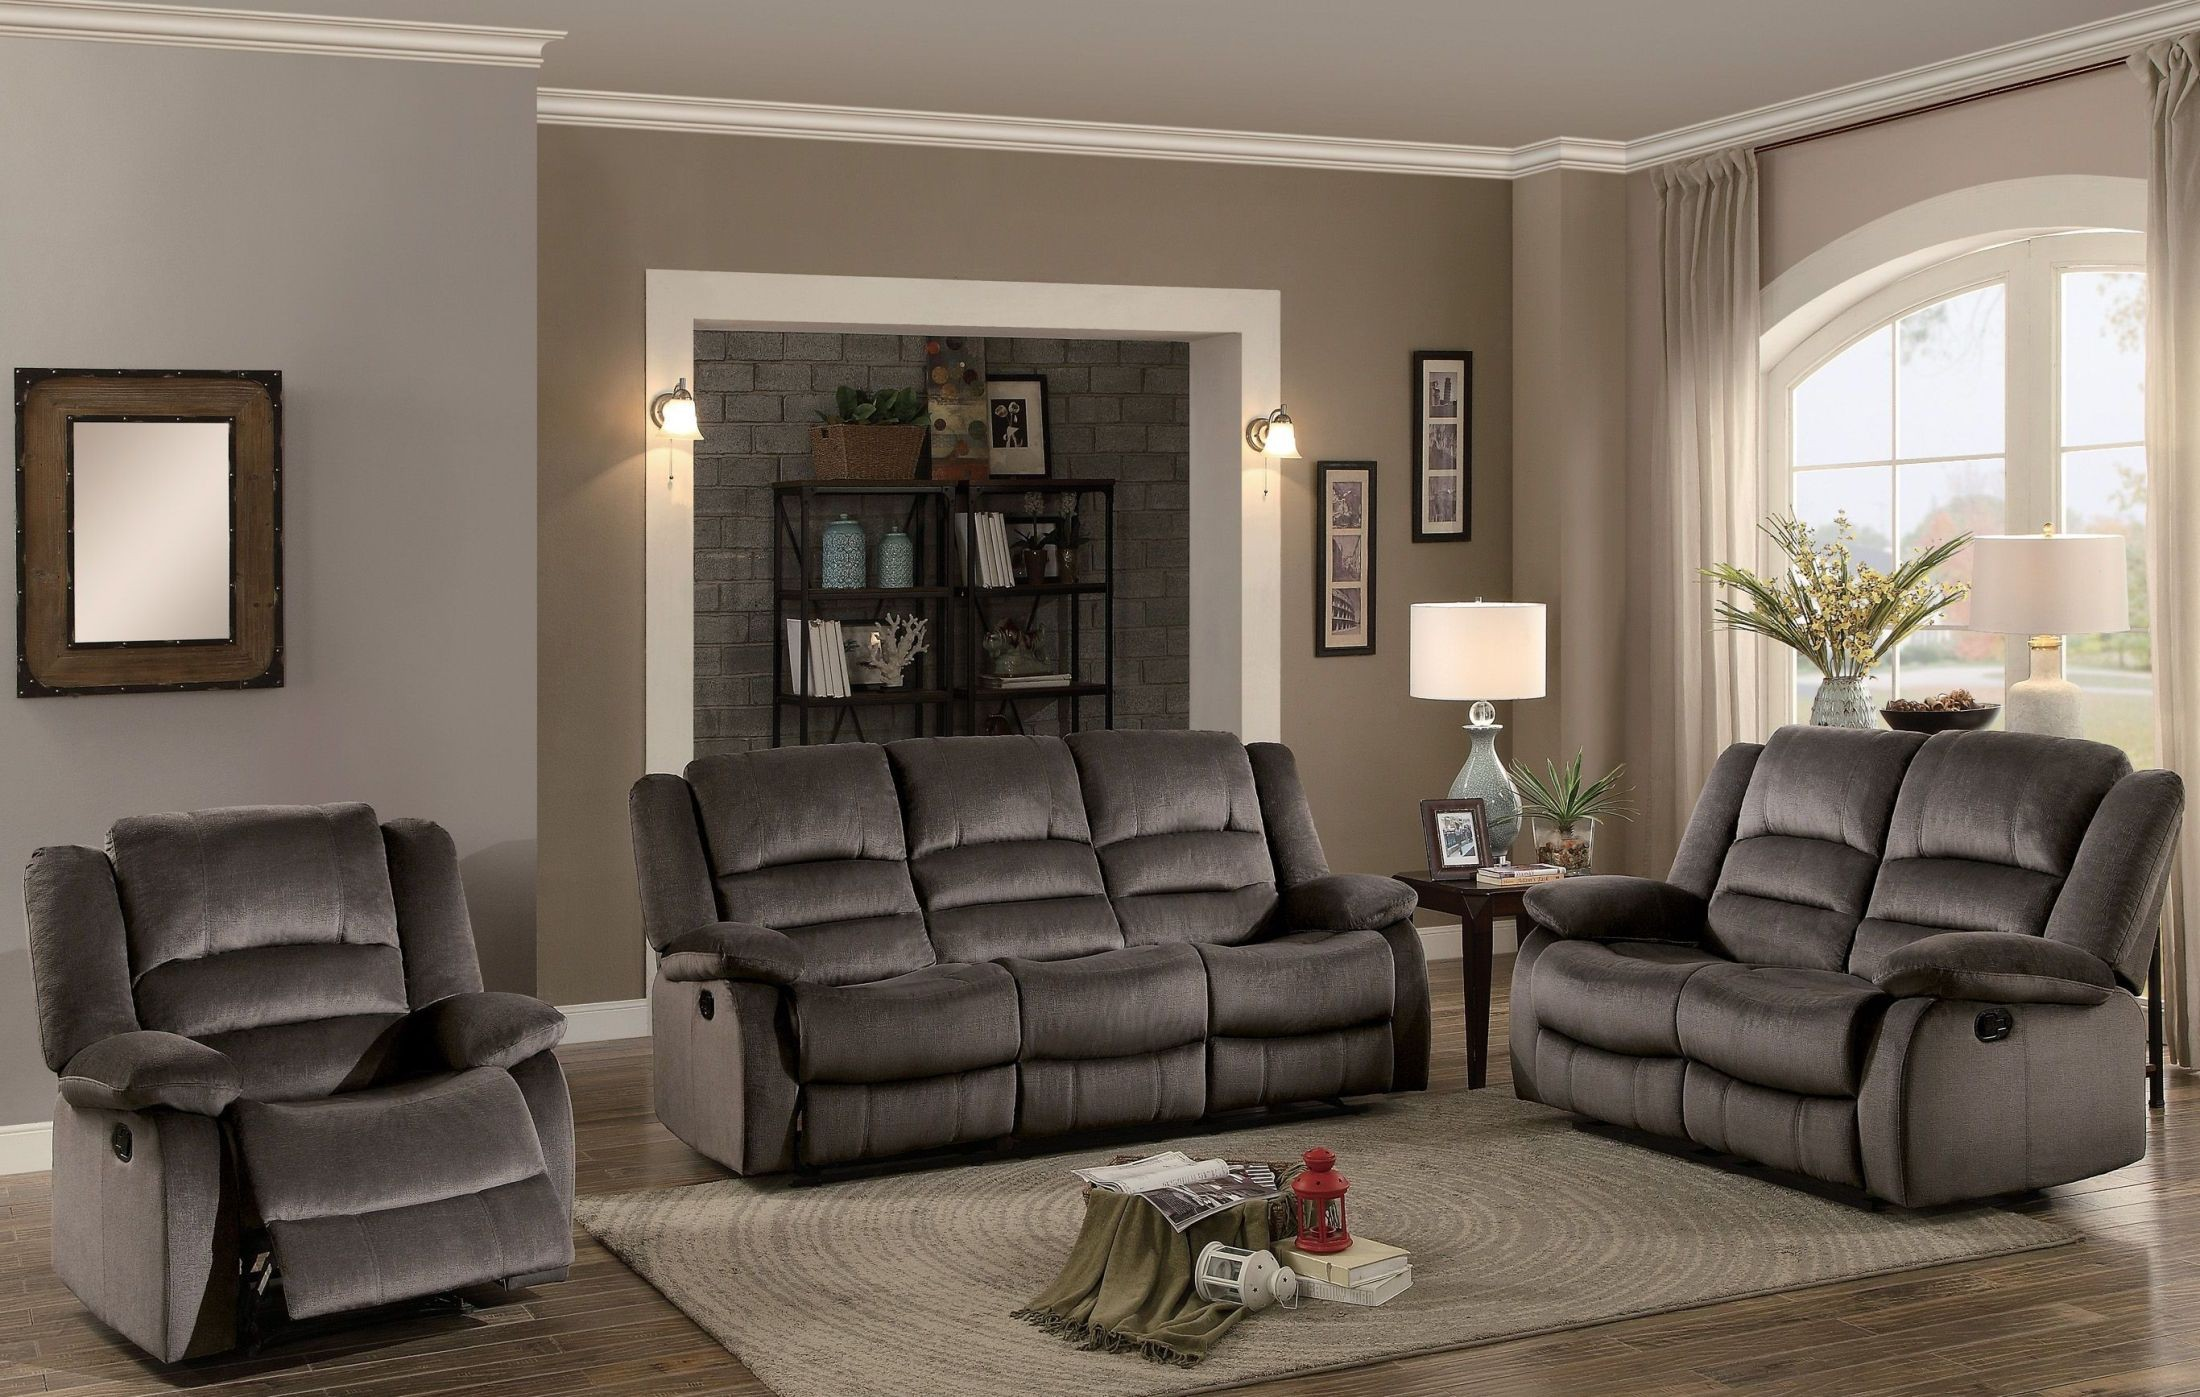 Jarita chocolate double reclining living room set from homelegance coleman furniture for Living room with two recliners